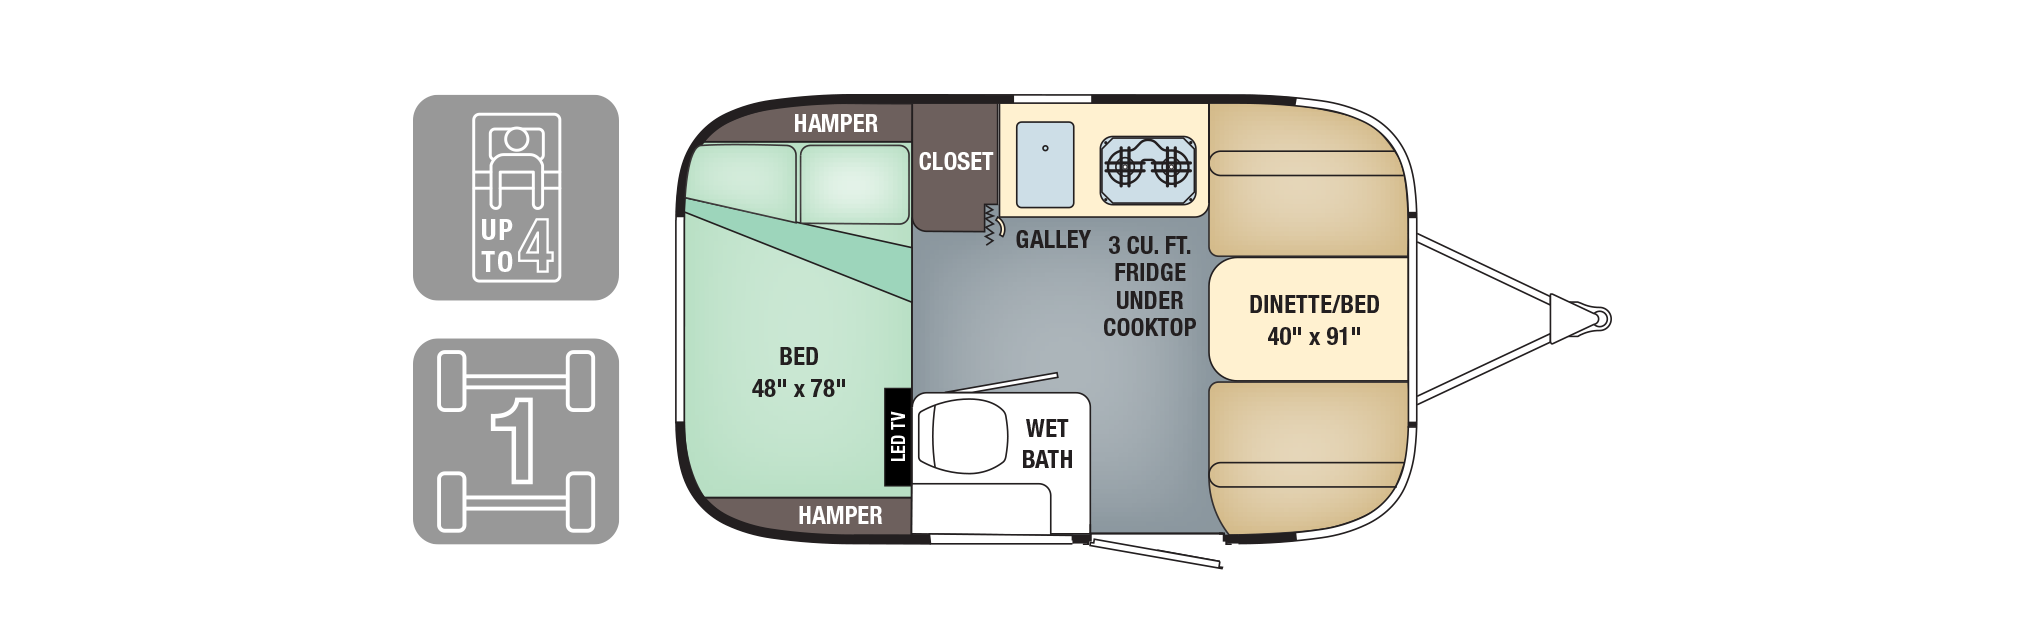 Airstream The Sport trailer plan